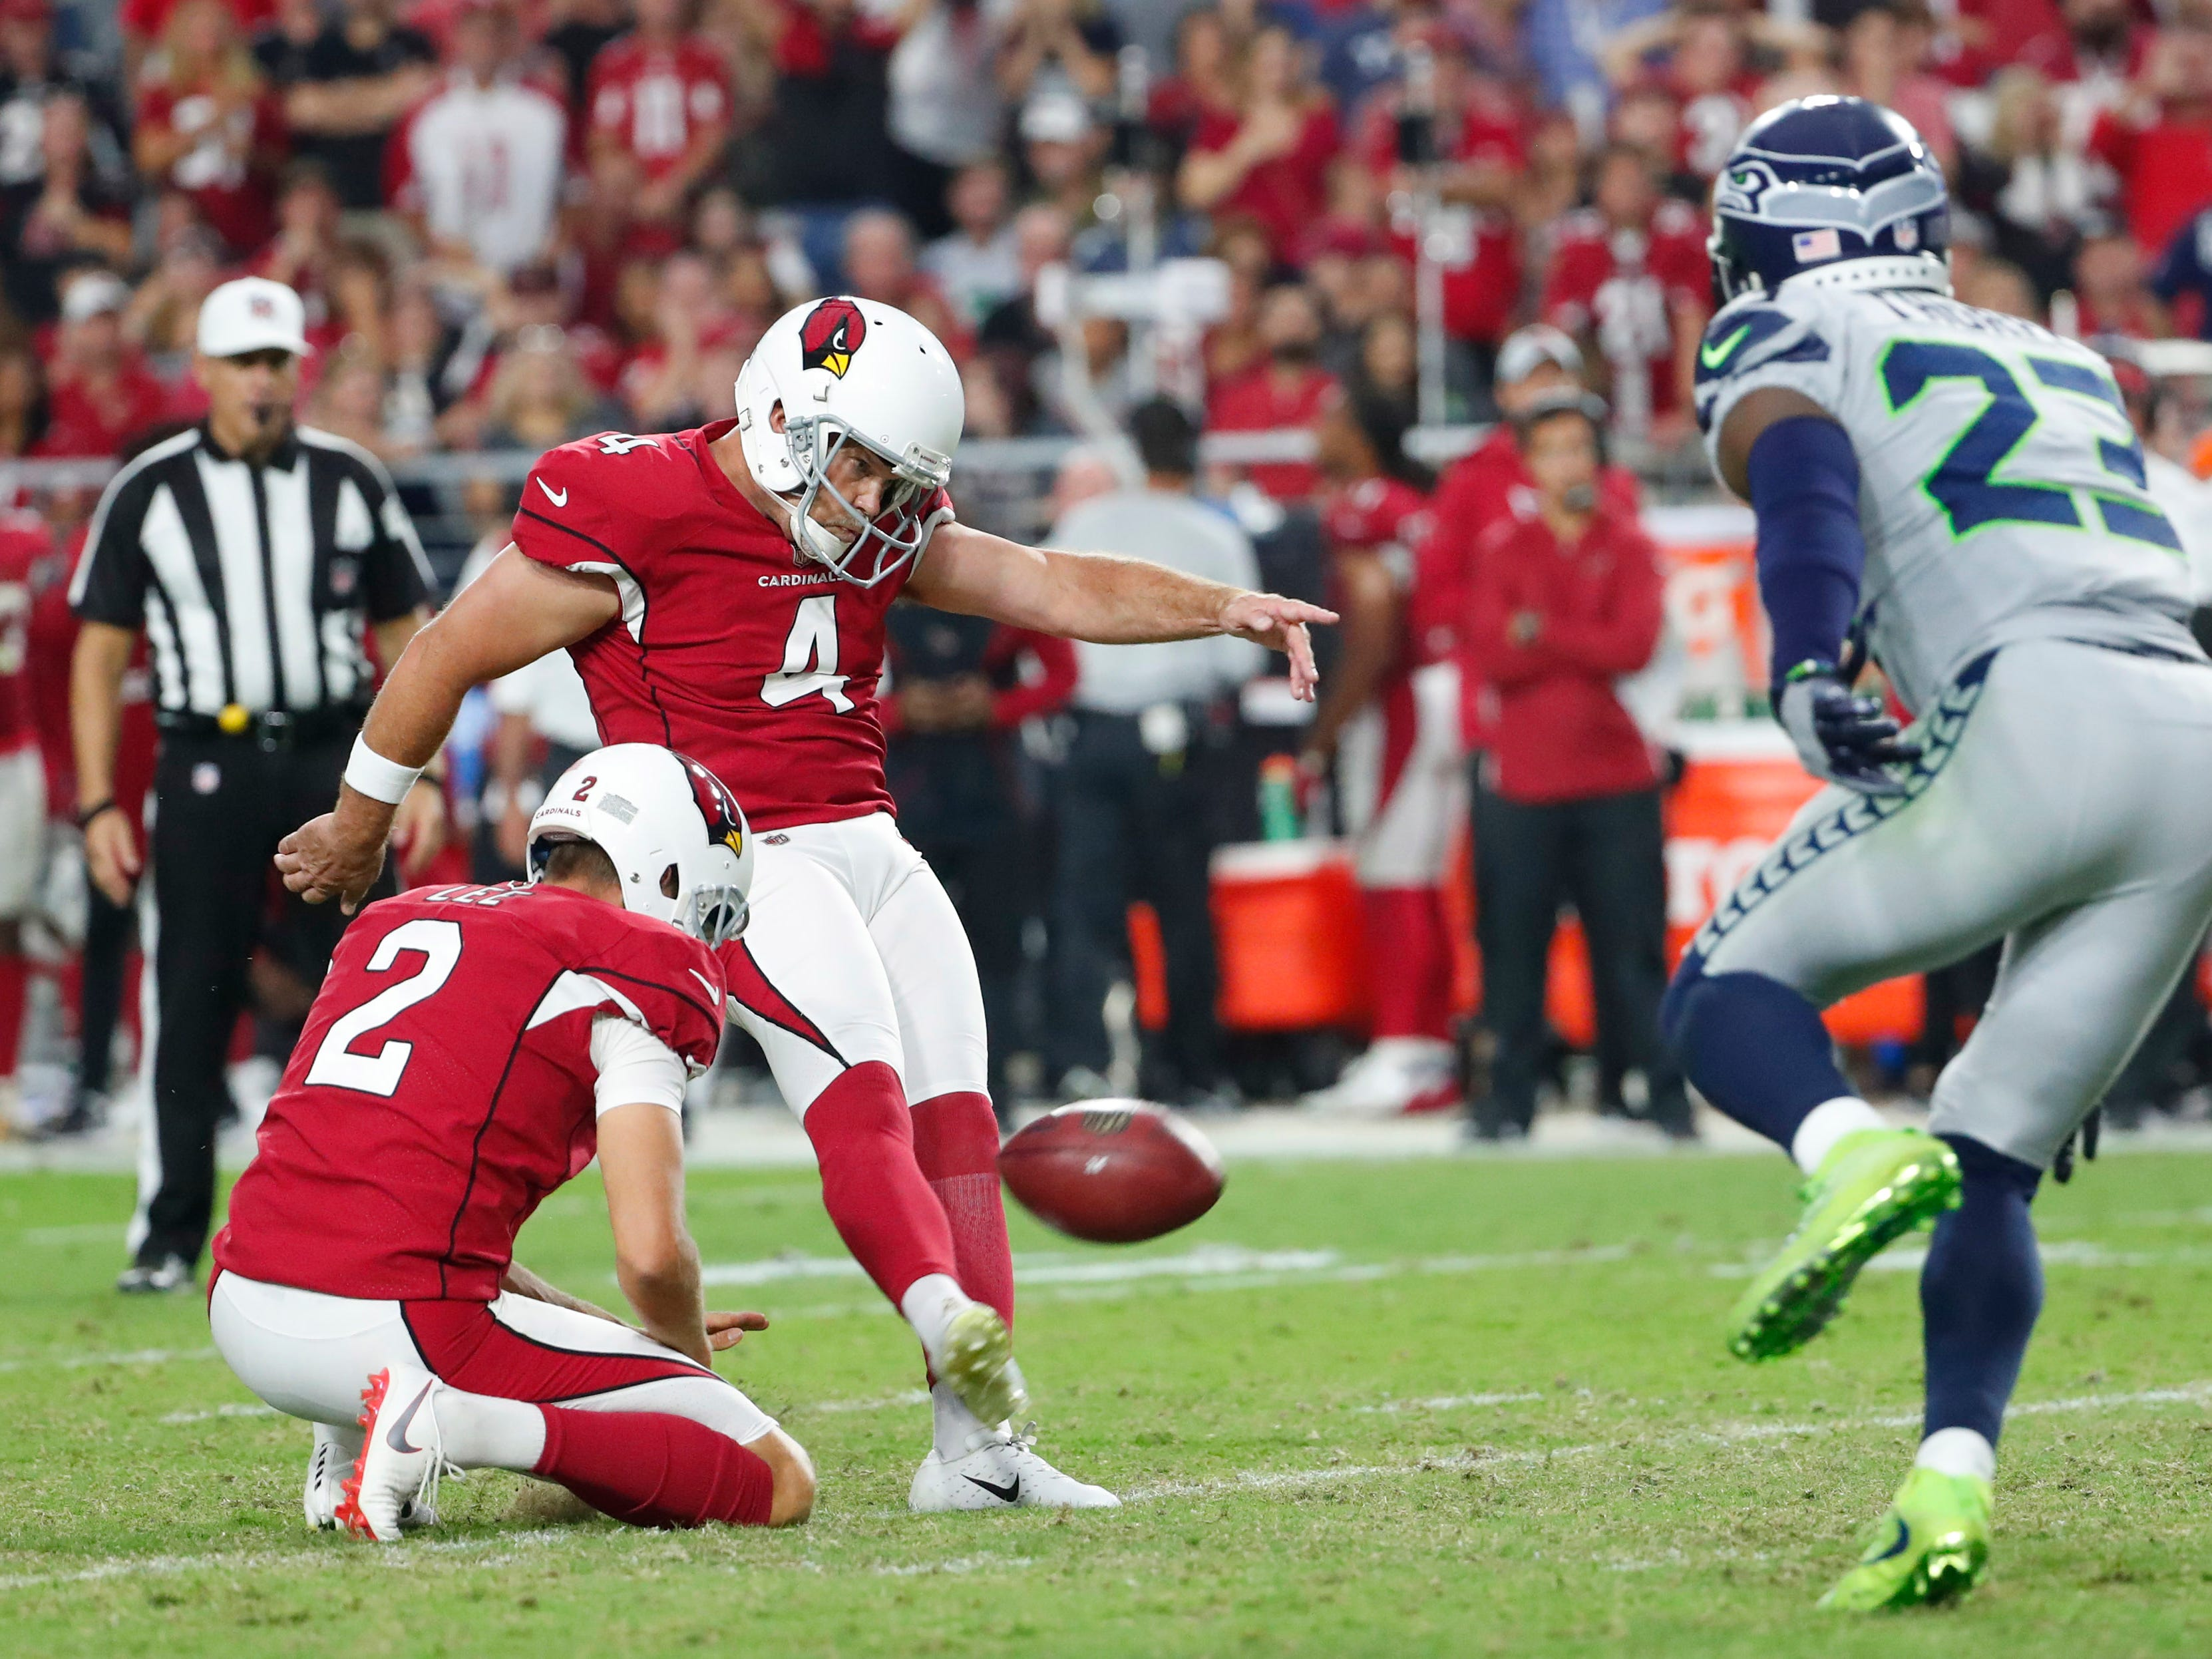 Arizona Cardinals kicker Phil Dawson (4) misses a field goal against the Seattle Seahawks lat in the fourth quarter at State Farm Stadium in Glendale, Ariz. September 30, 2018.